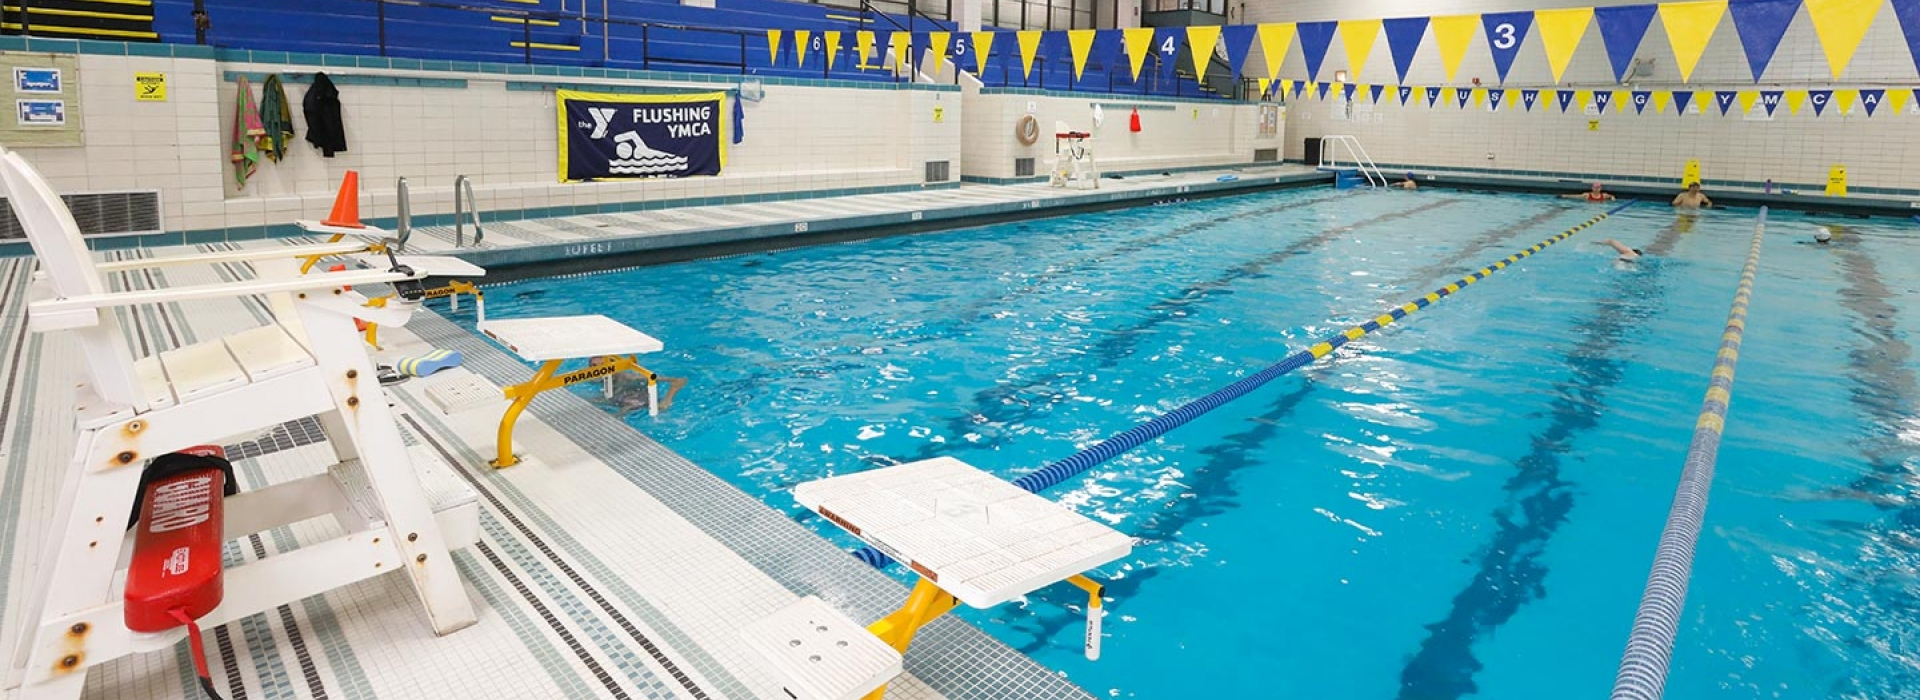 About flushing ymca new york city 39 s ymca - Ymca flushing swimming pool schedule ...